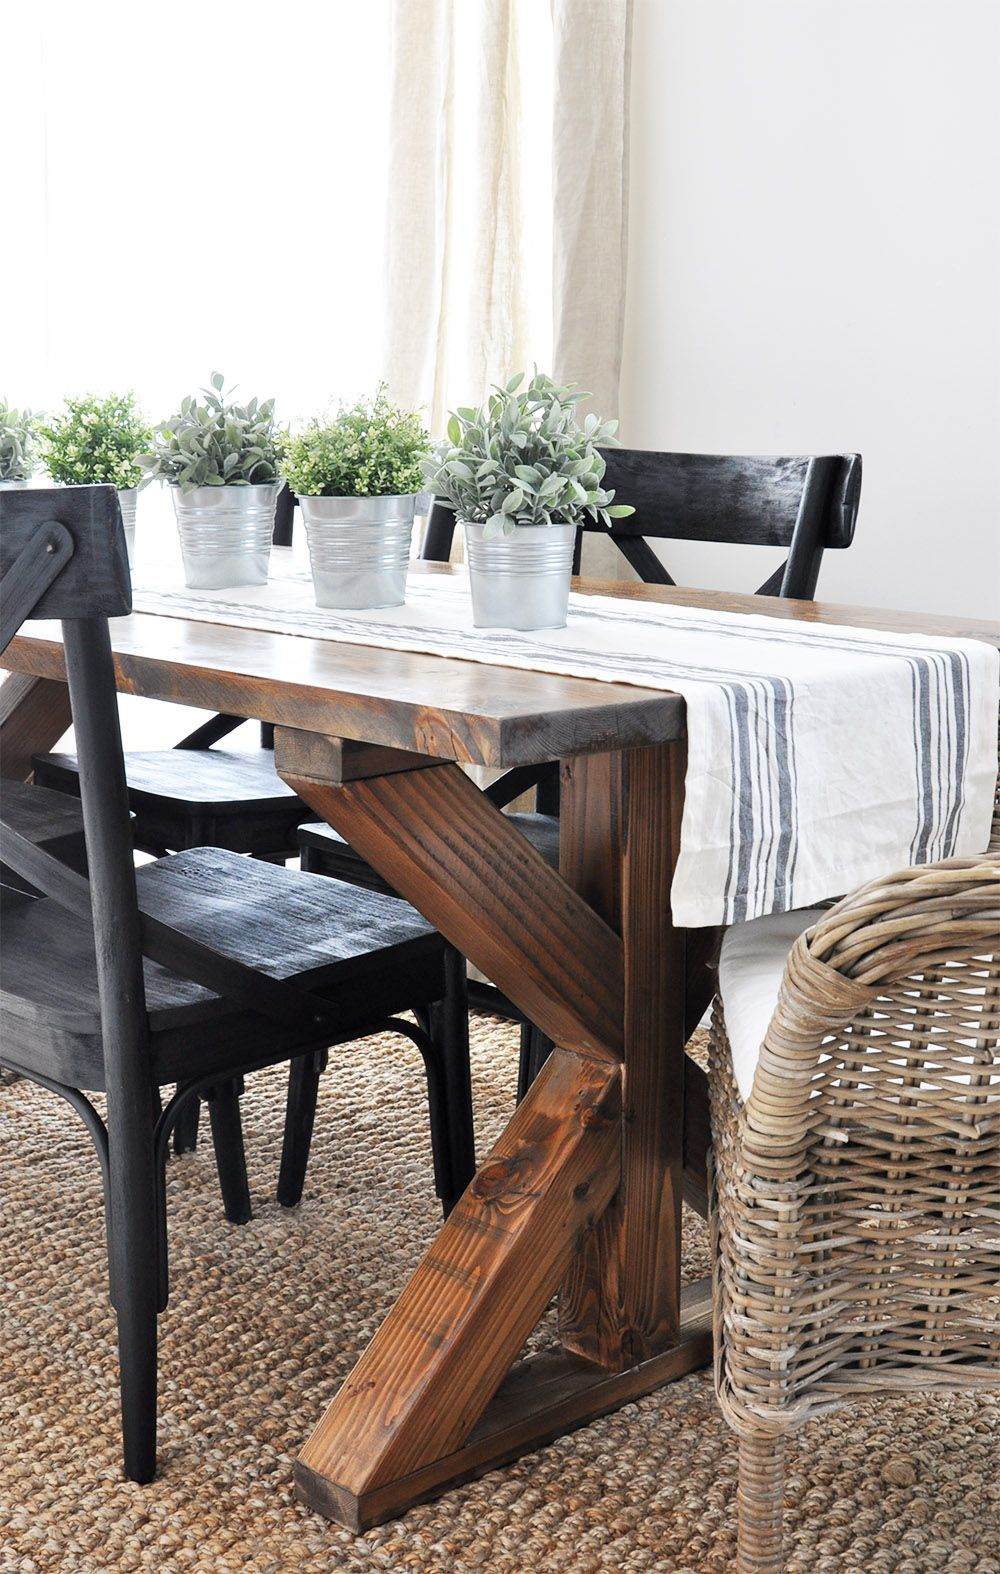 X Brace Farmhouse Table Dining room table, Farmhouse